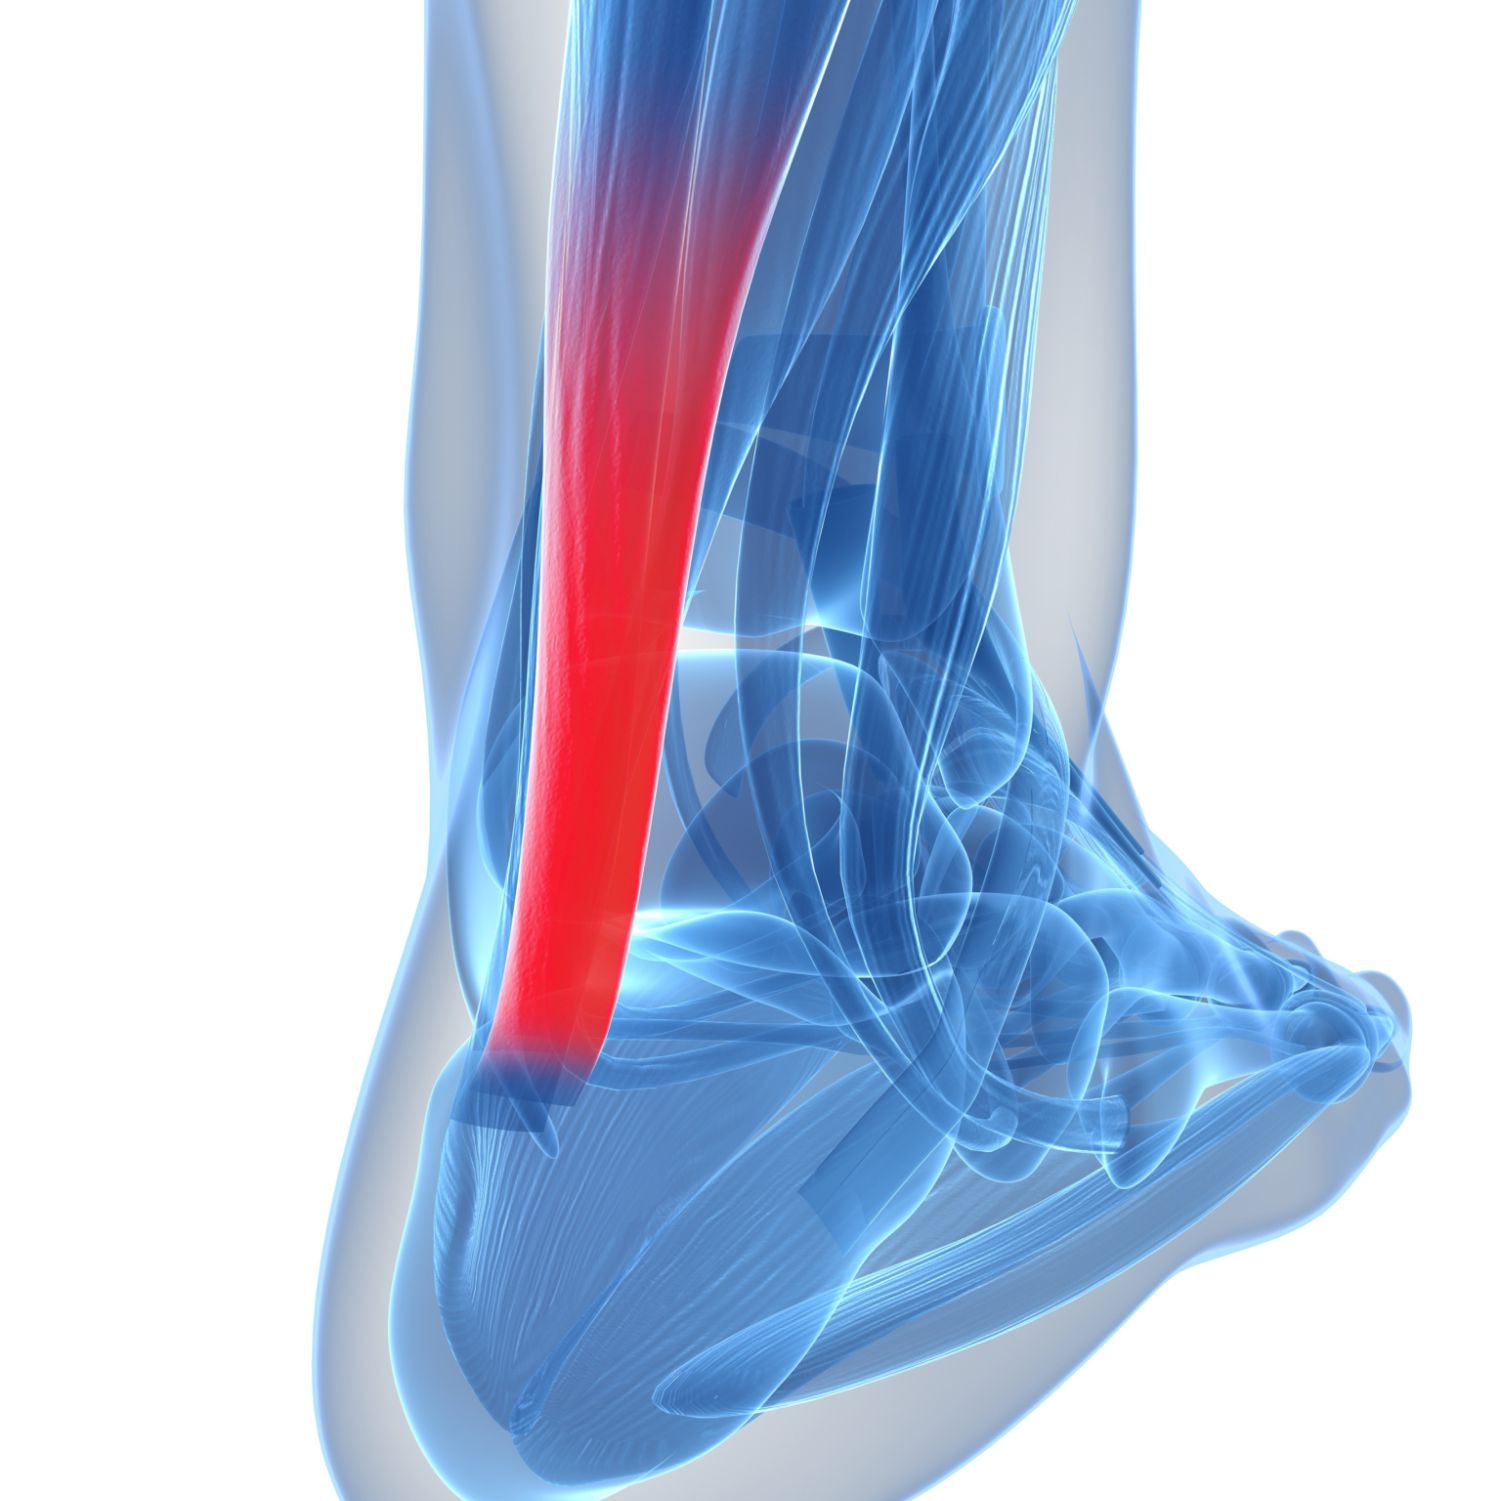 The achilles tendon is most likely place to get tendonitis on the Camino